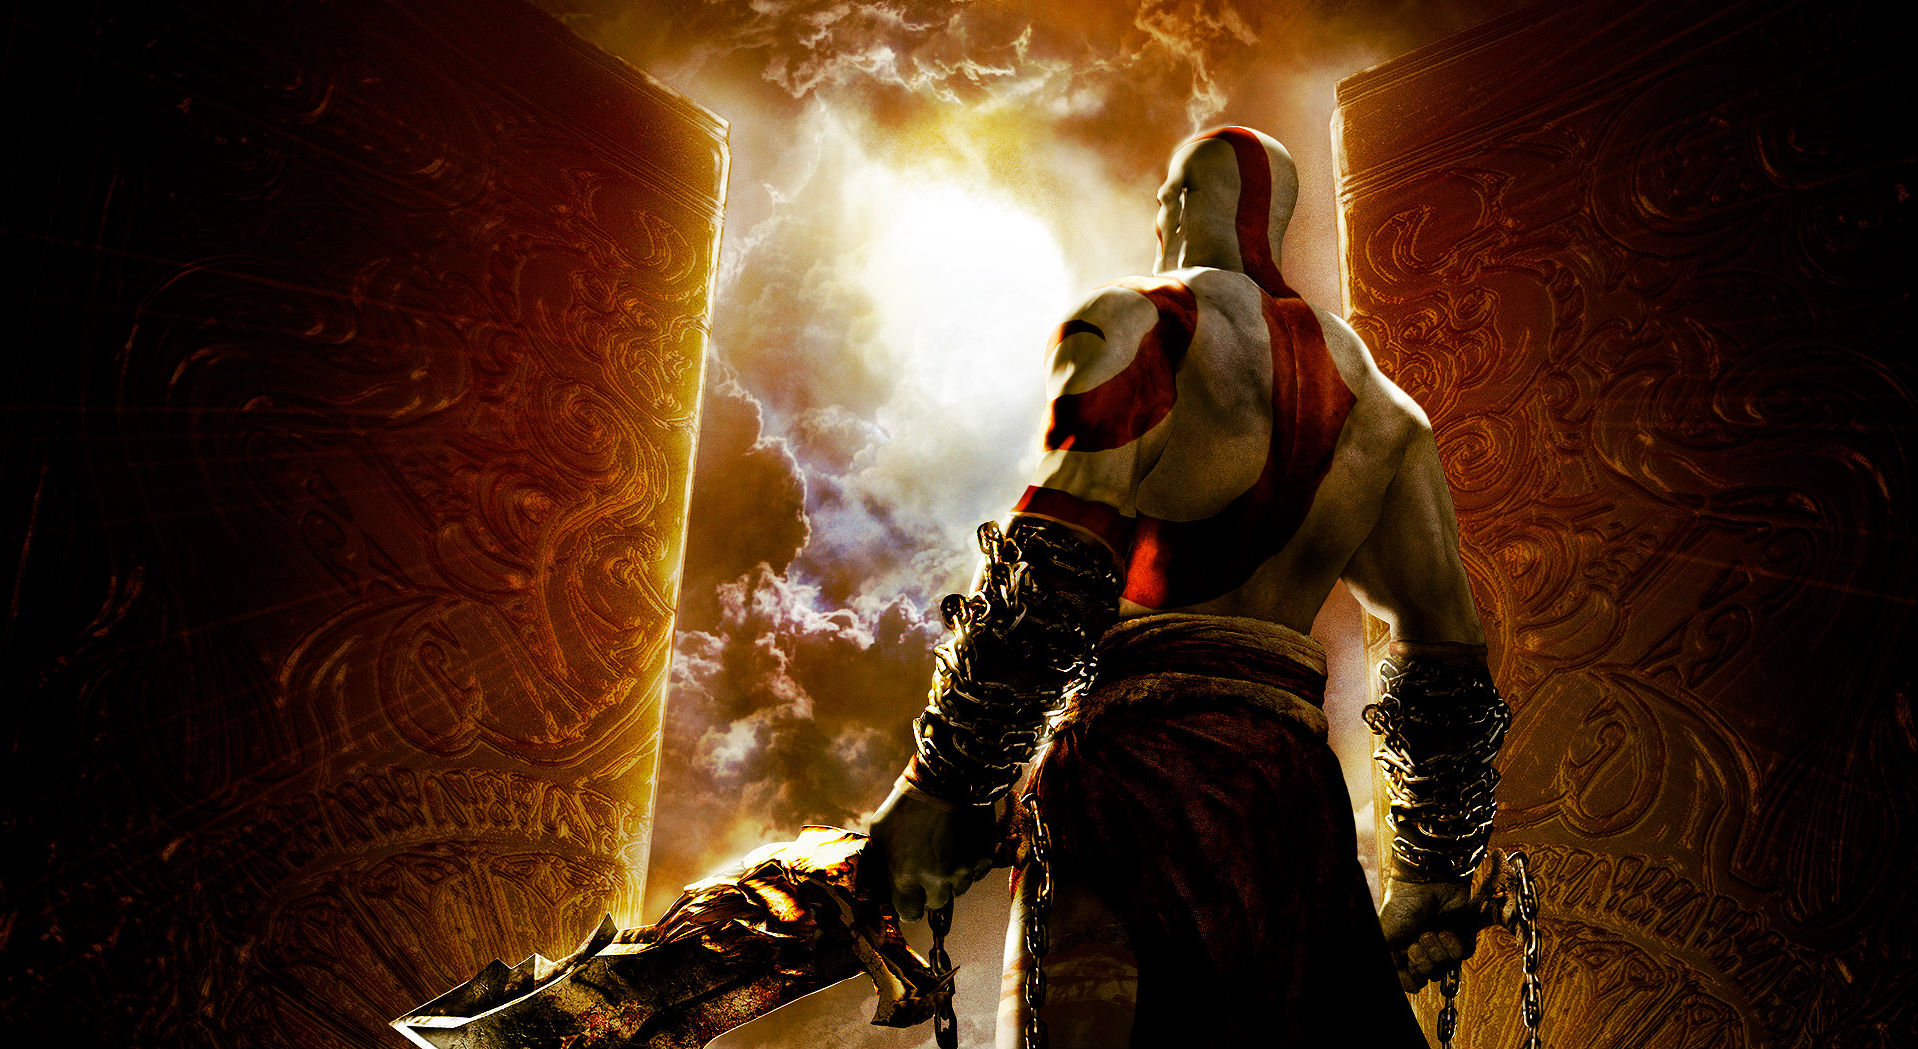 Video Game - God Of War: Chains Of Olympus  Wallpaper